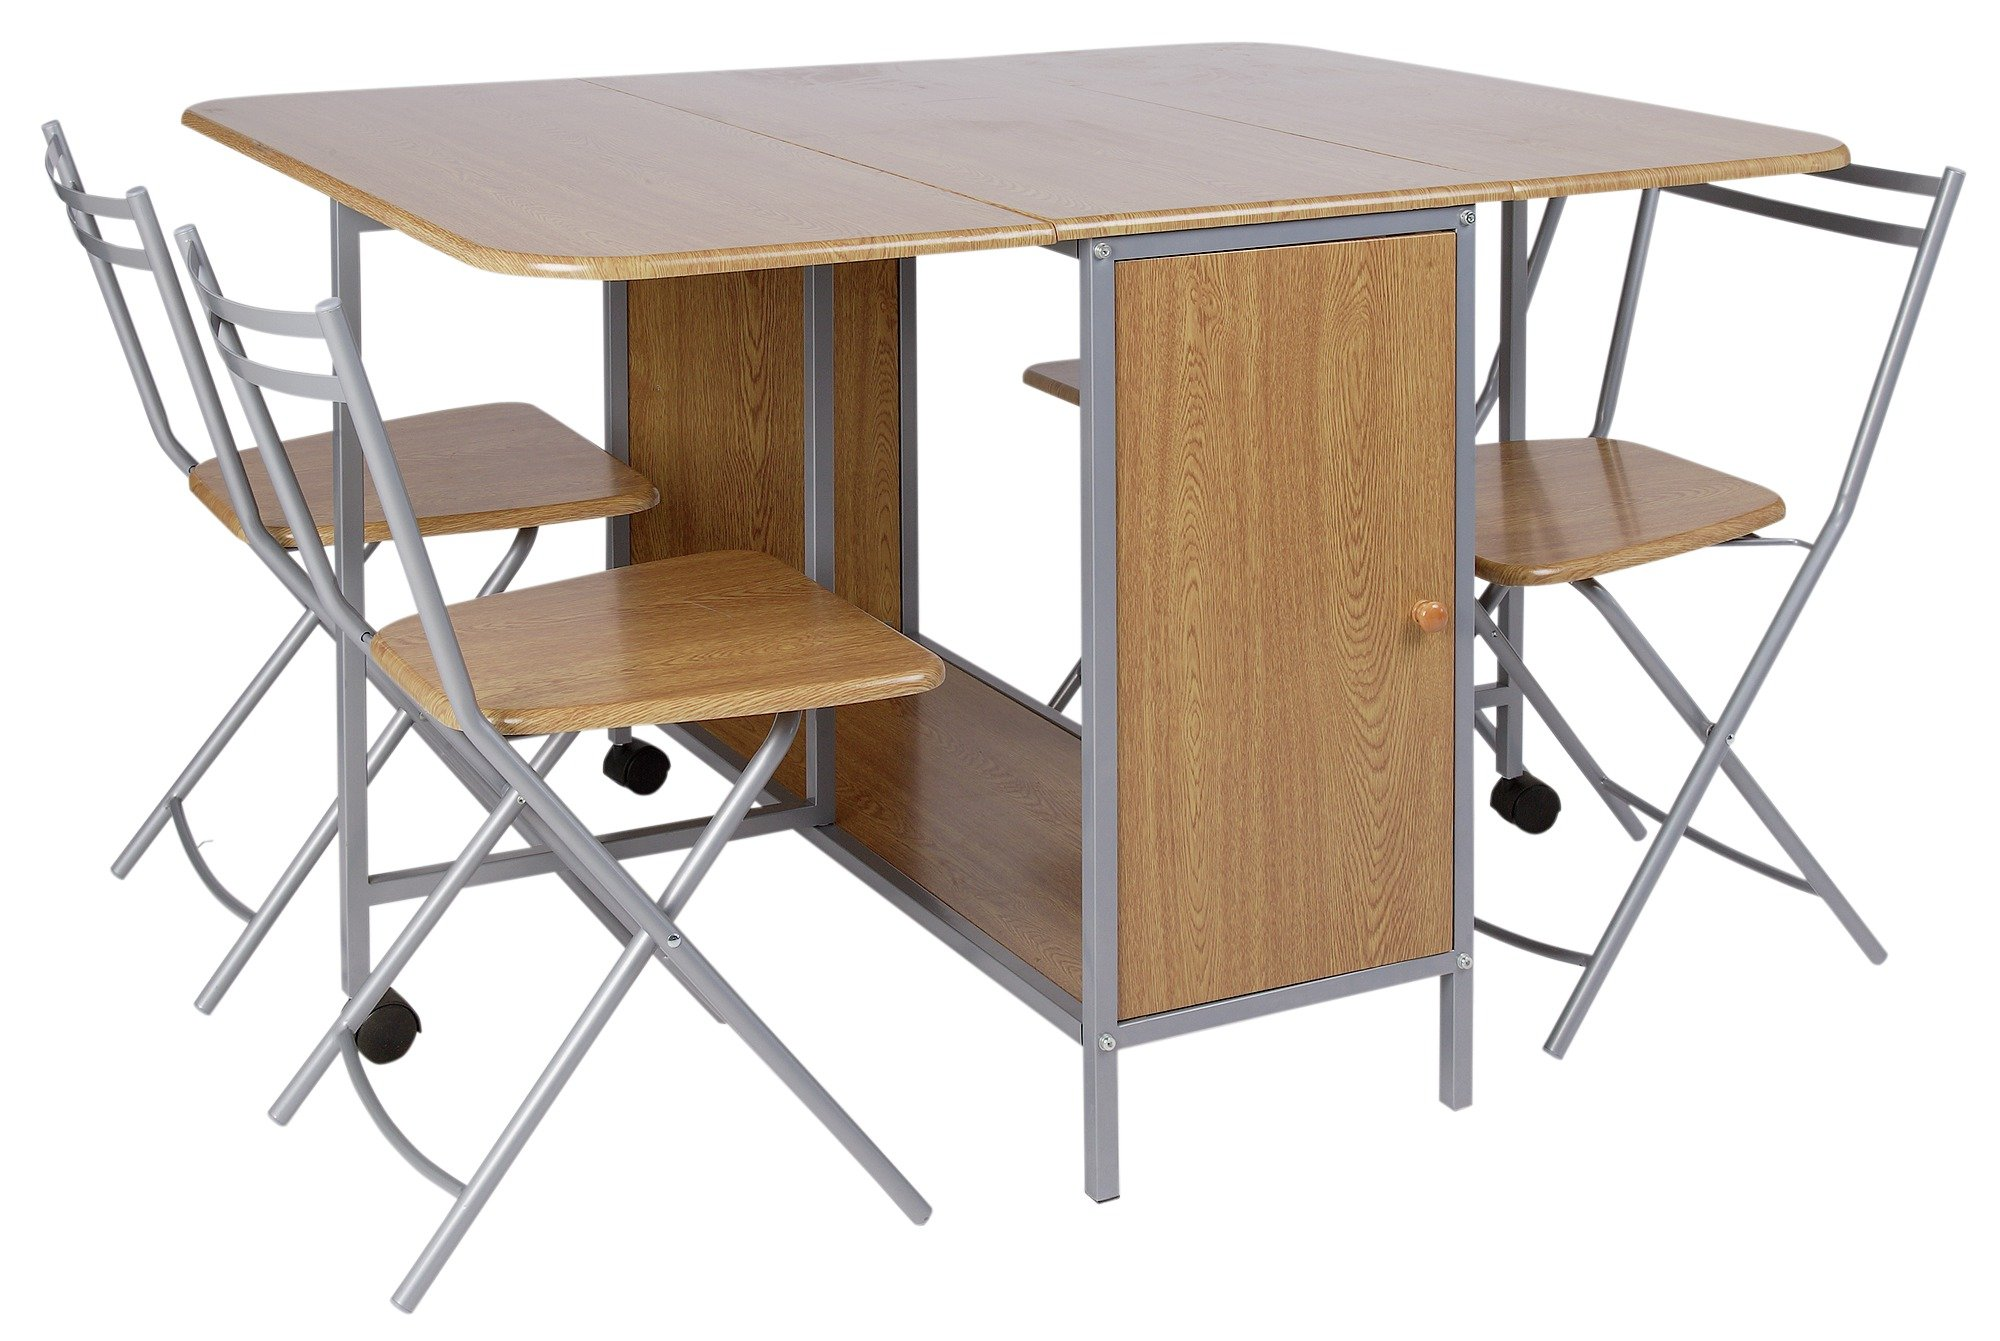 HOME Extendable Rectangular Dining Table U0026 4 Folding Chairs